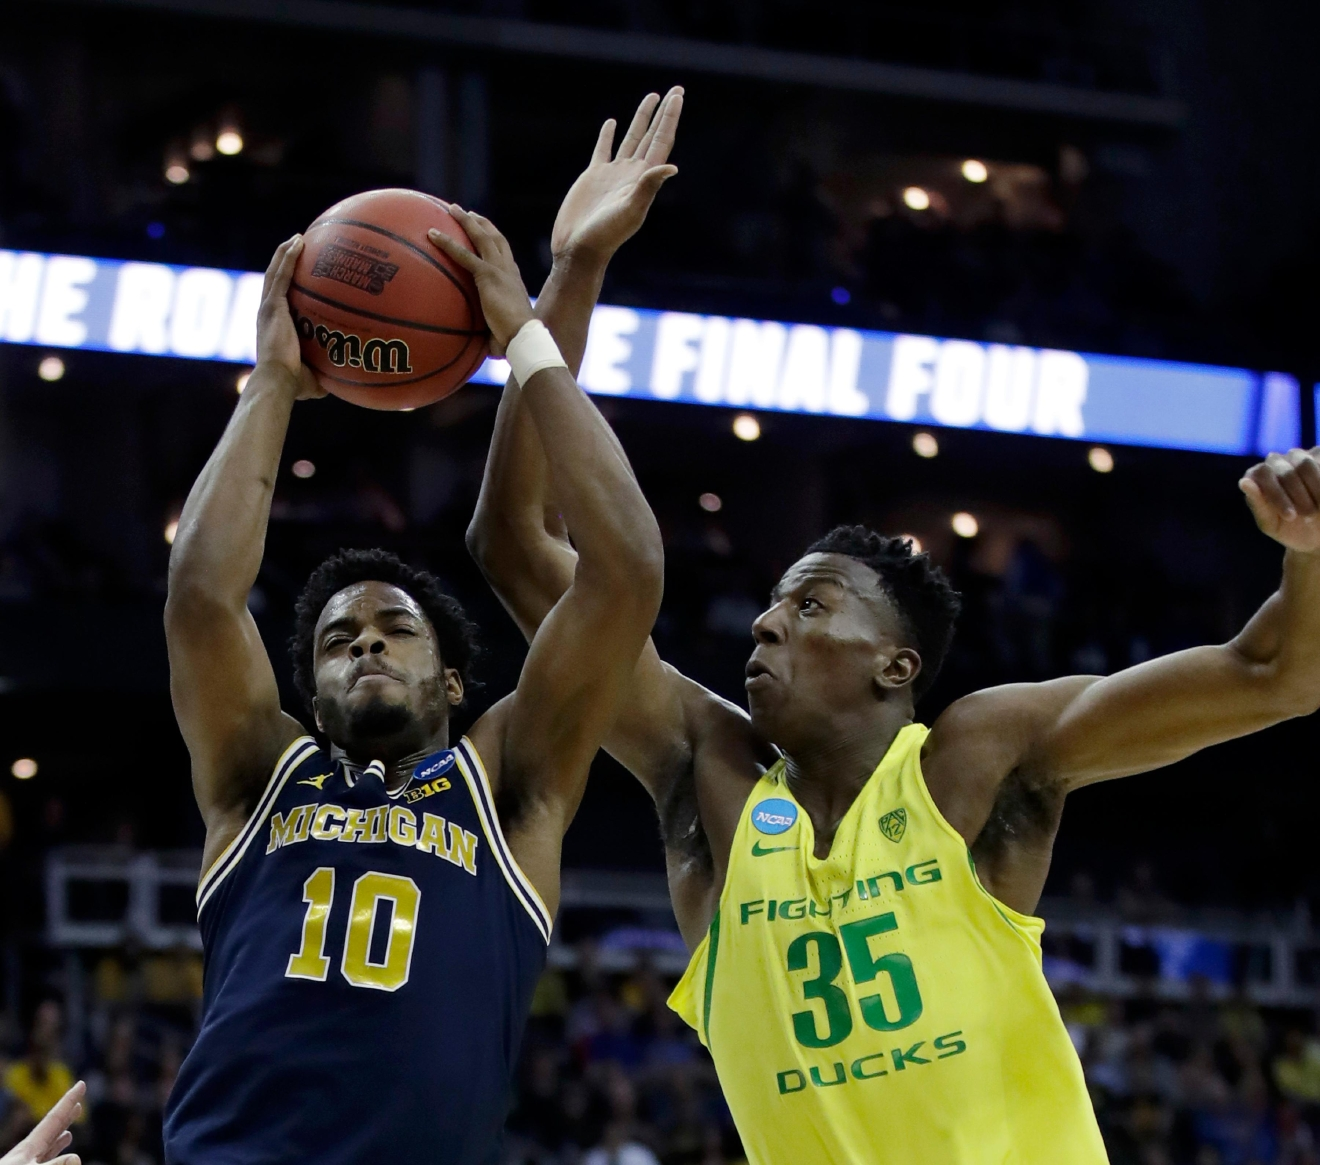 Michigan guard Derrick Walton Jr. (10) grabs a rebound next to Oregon forward Kavell Bigby-Williams during the first half of a regional semifinal of the NCAA men's college basketball tournament, Thursday, March 23, 2017, in Kansas City, Mo. (AP Photo/Charlie Riedel)